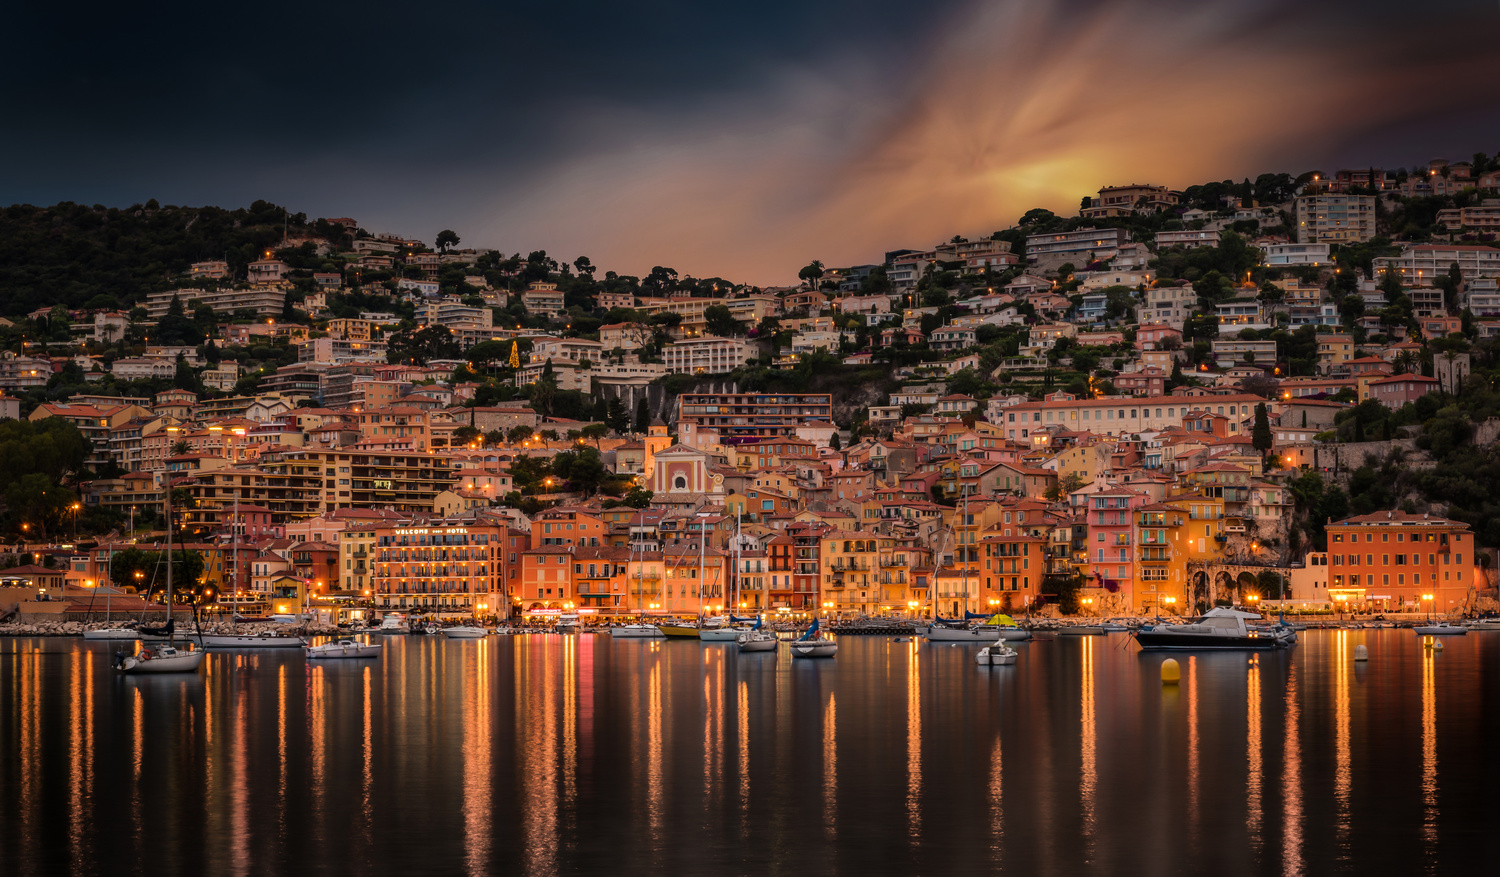 Villefranche - Sunset by Alex Lud